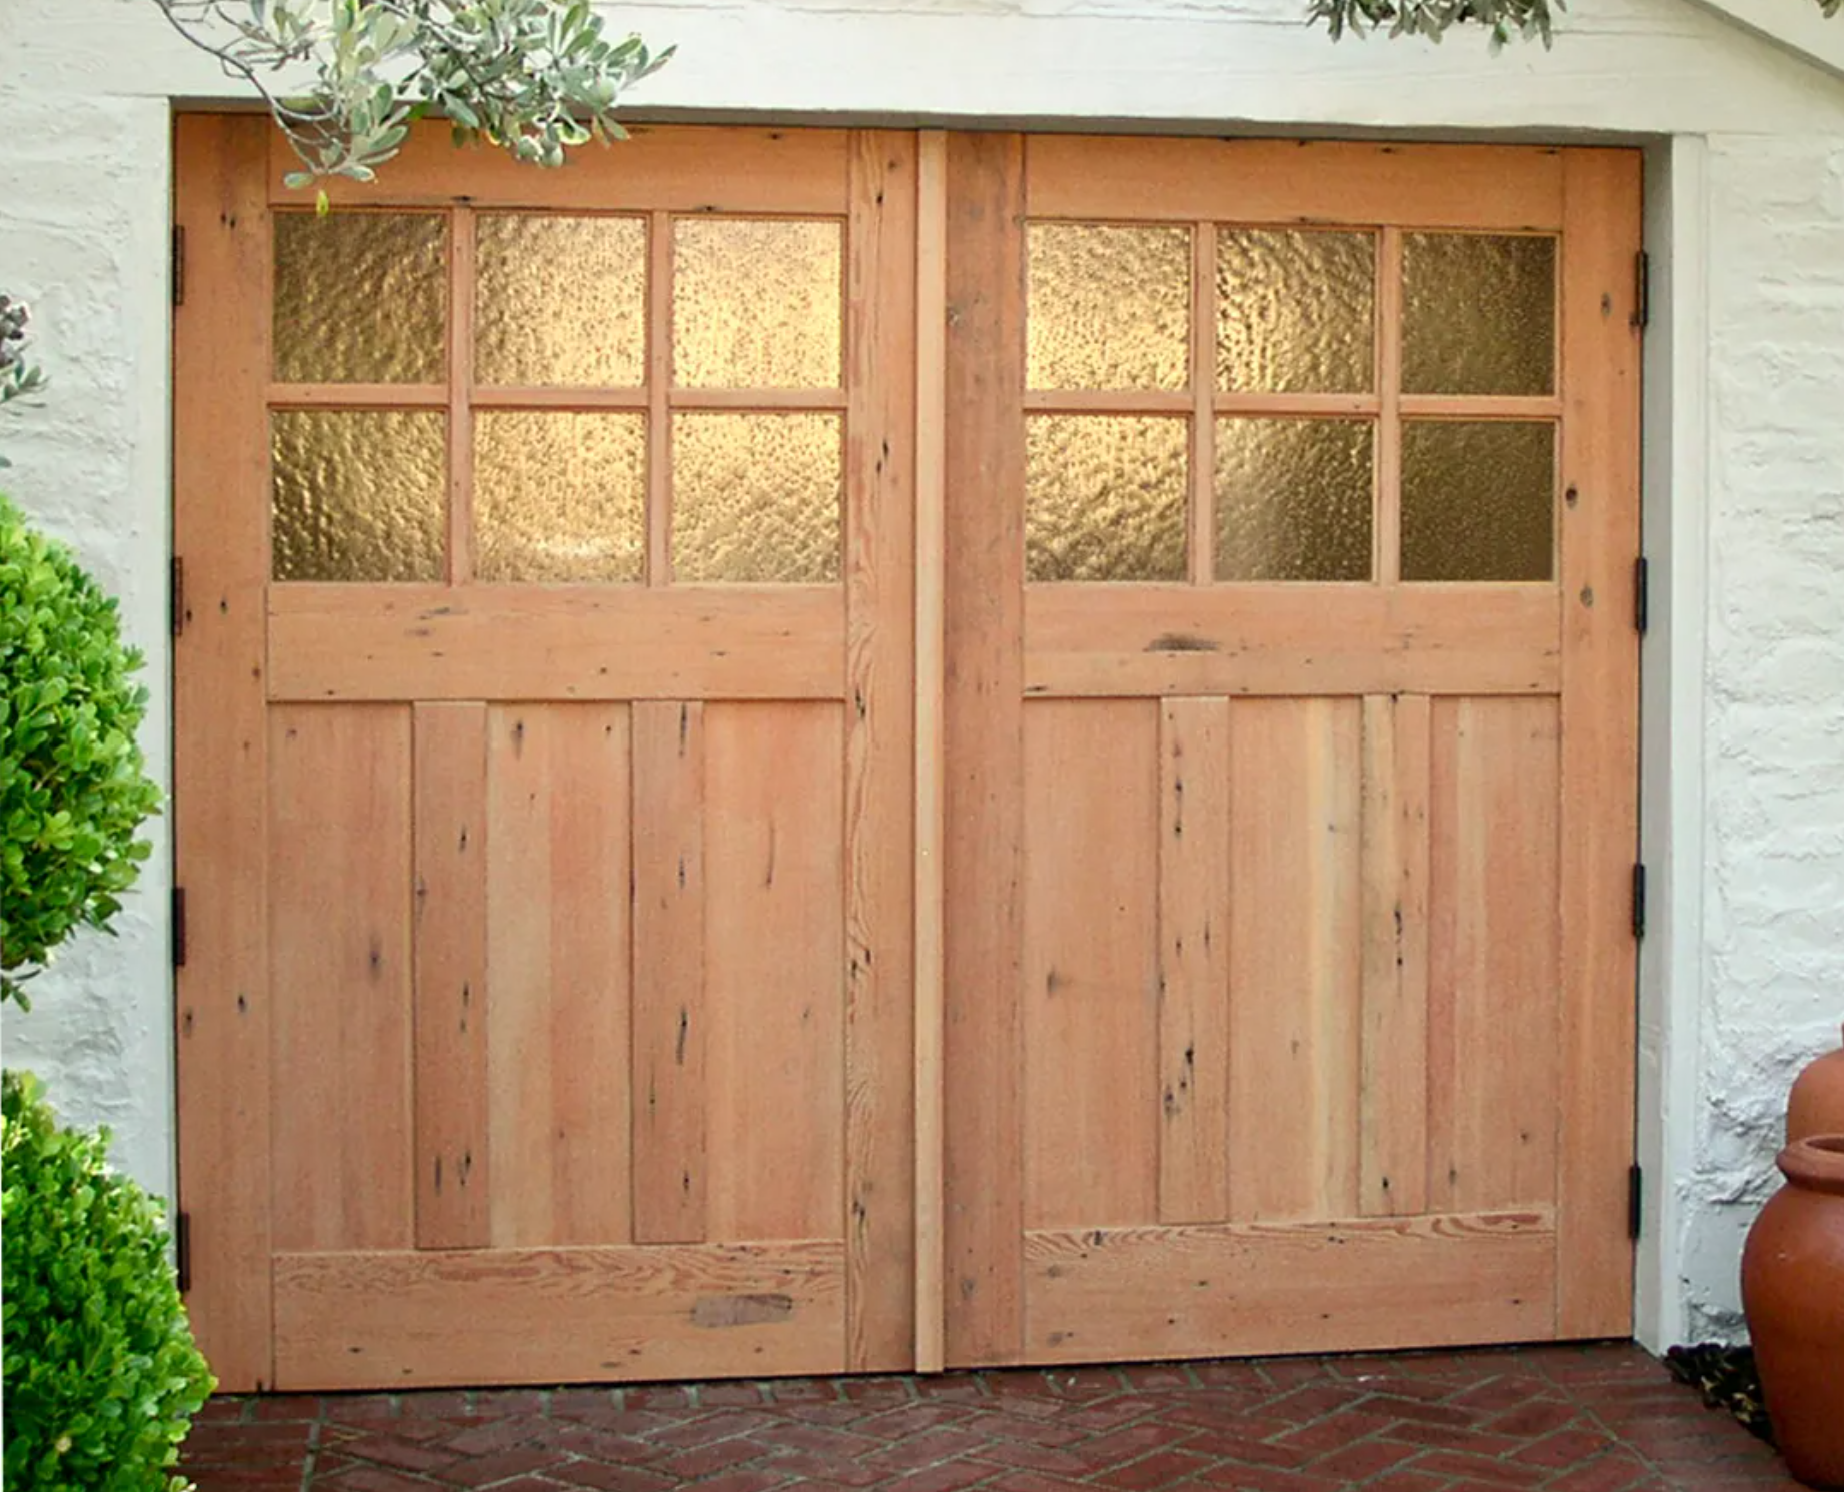 Carriage Doors: 50 Ideas To Inspire Your Next Project - RealCraft